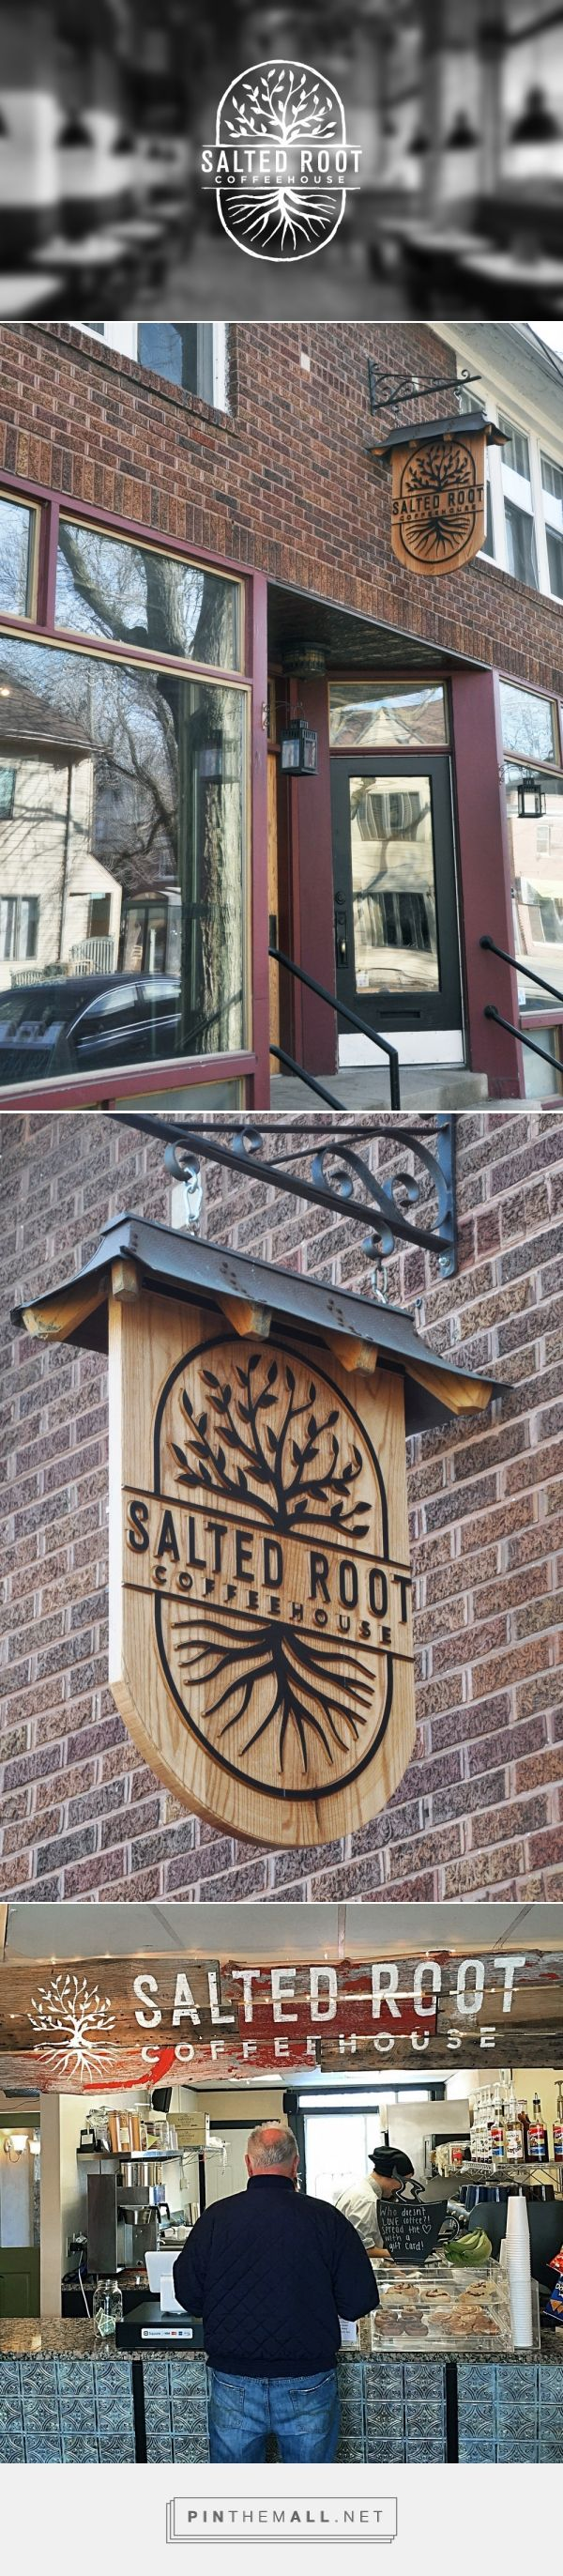 Salted Root Logo and Signage by brianrodenberg | Fivestar Branding – Design and Branding Agency & Inspiration Gallery